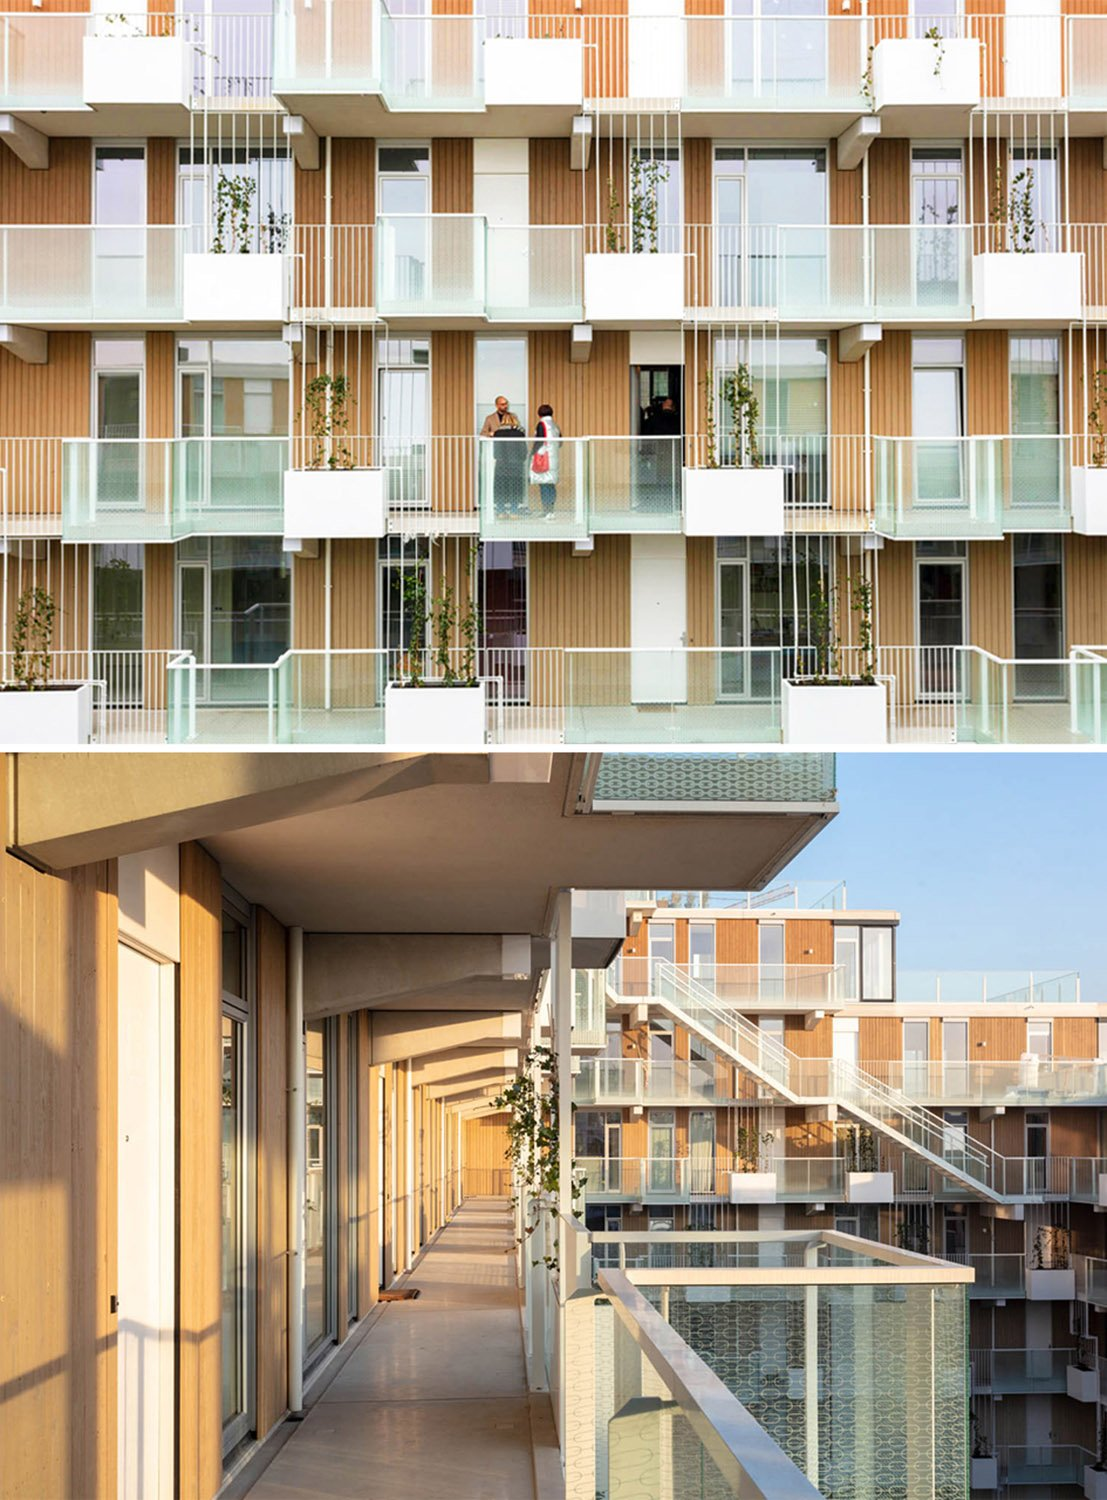 Mei architects and planners - Fenix I - Courtyard Marc Goodwin